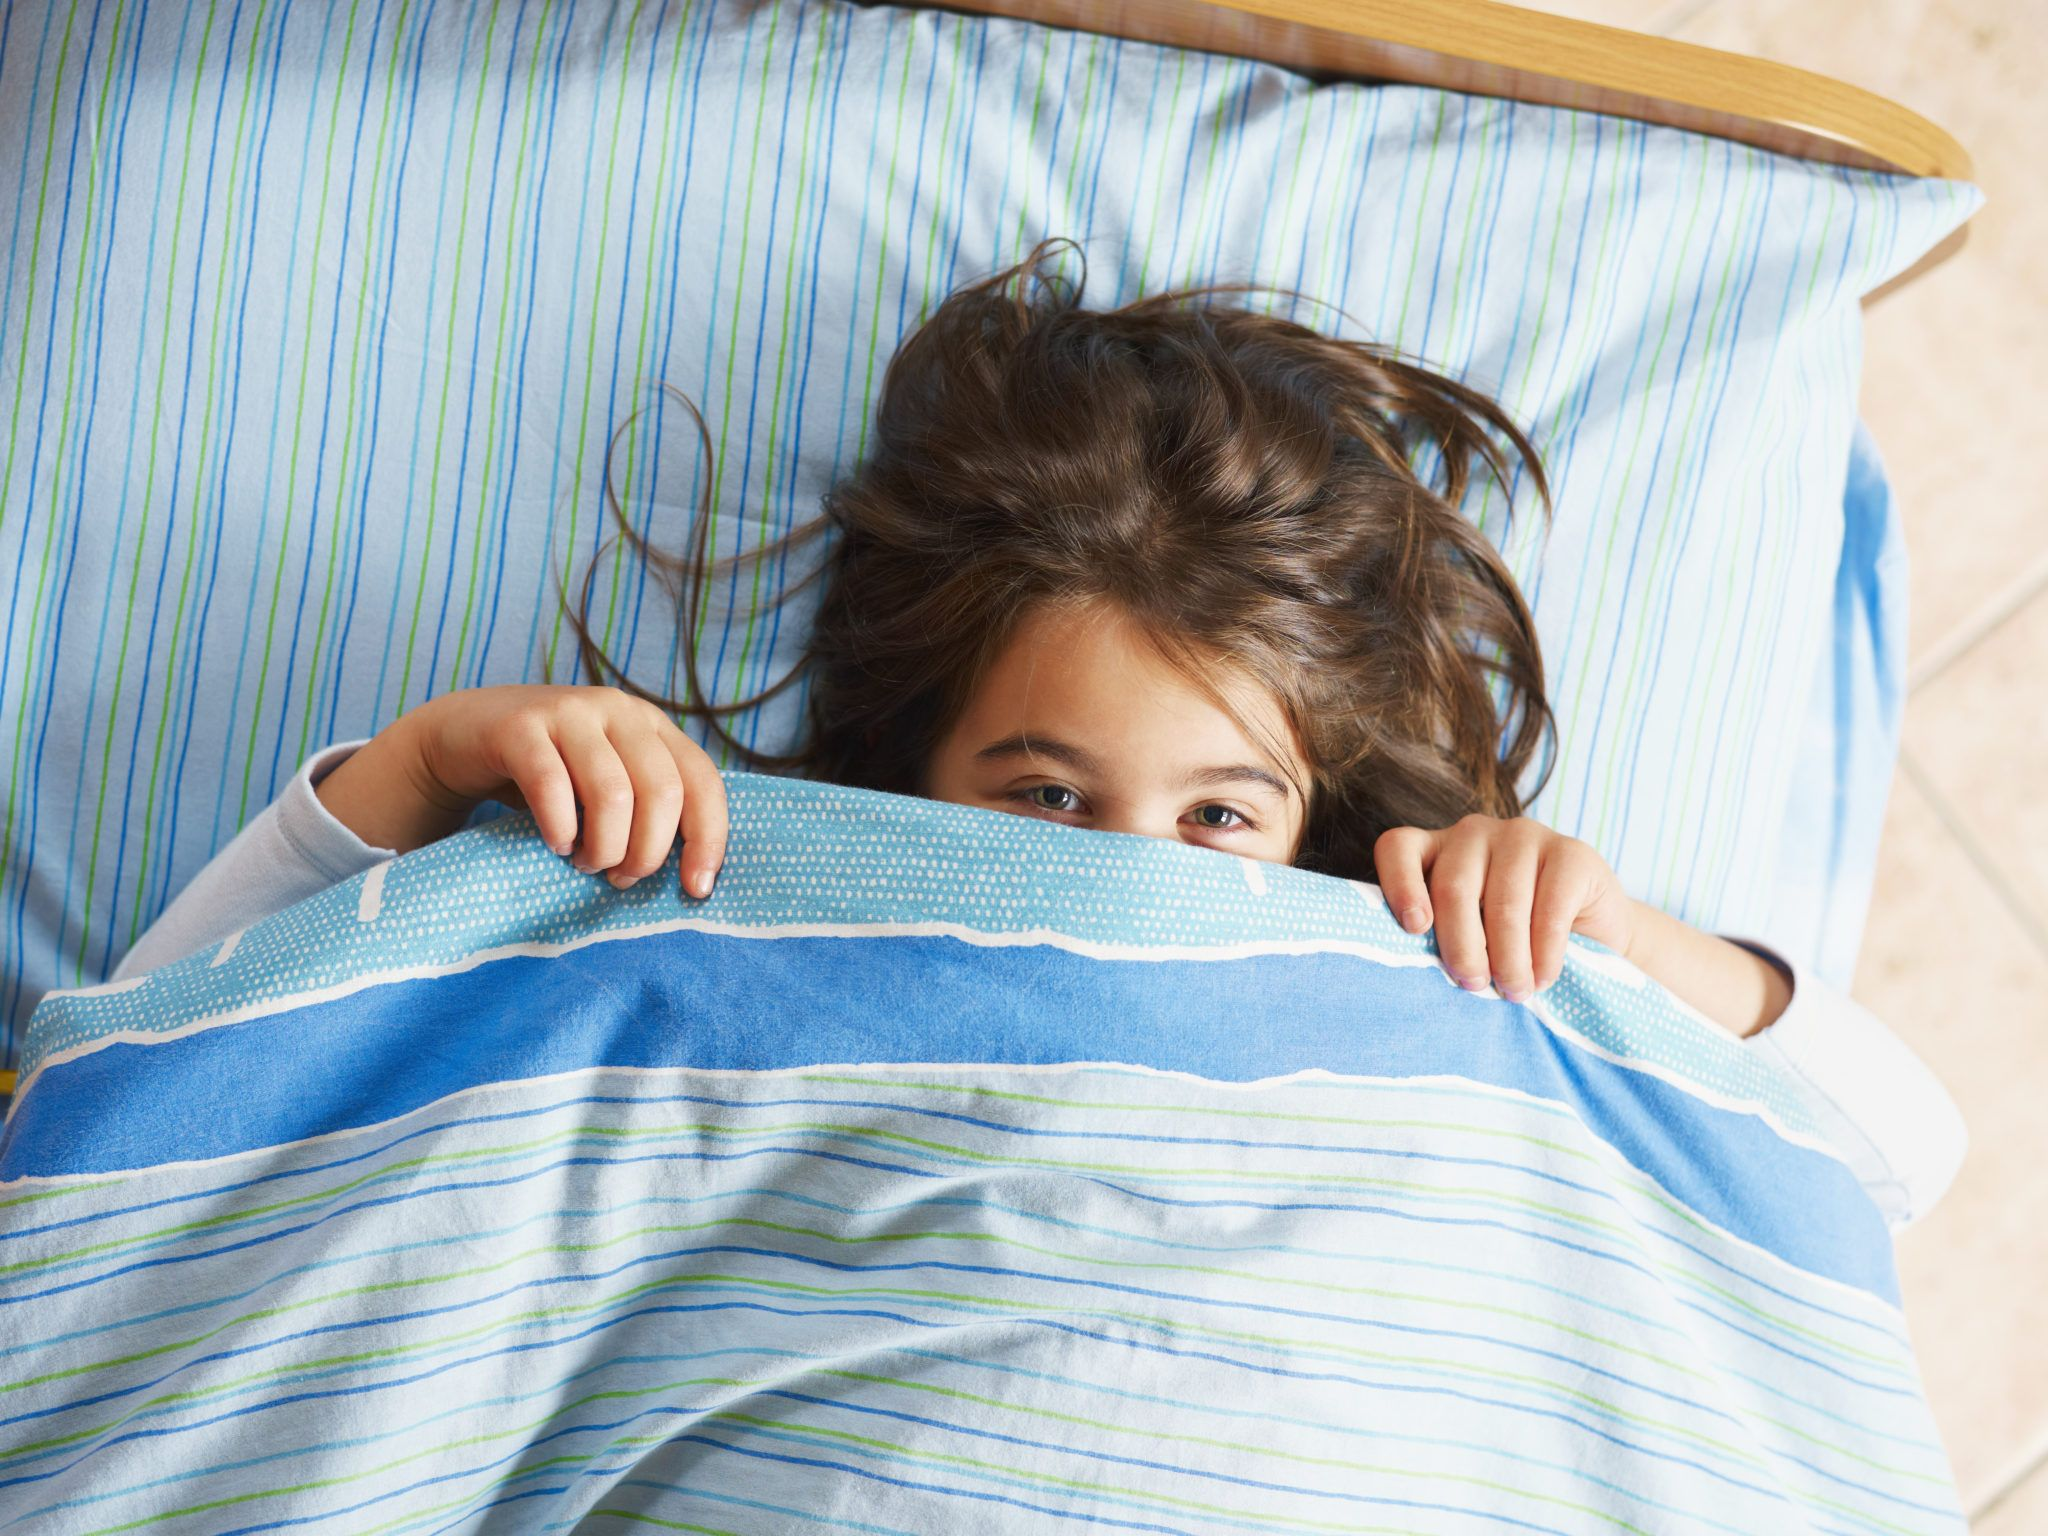 Girl under covers, looking at camera.